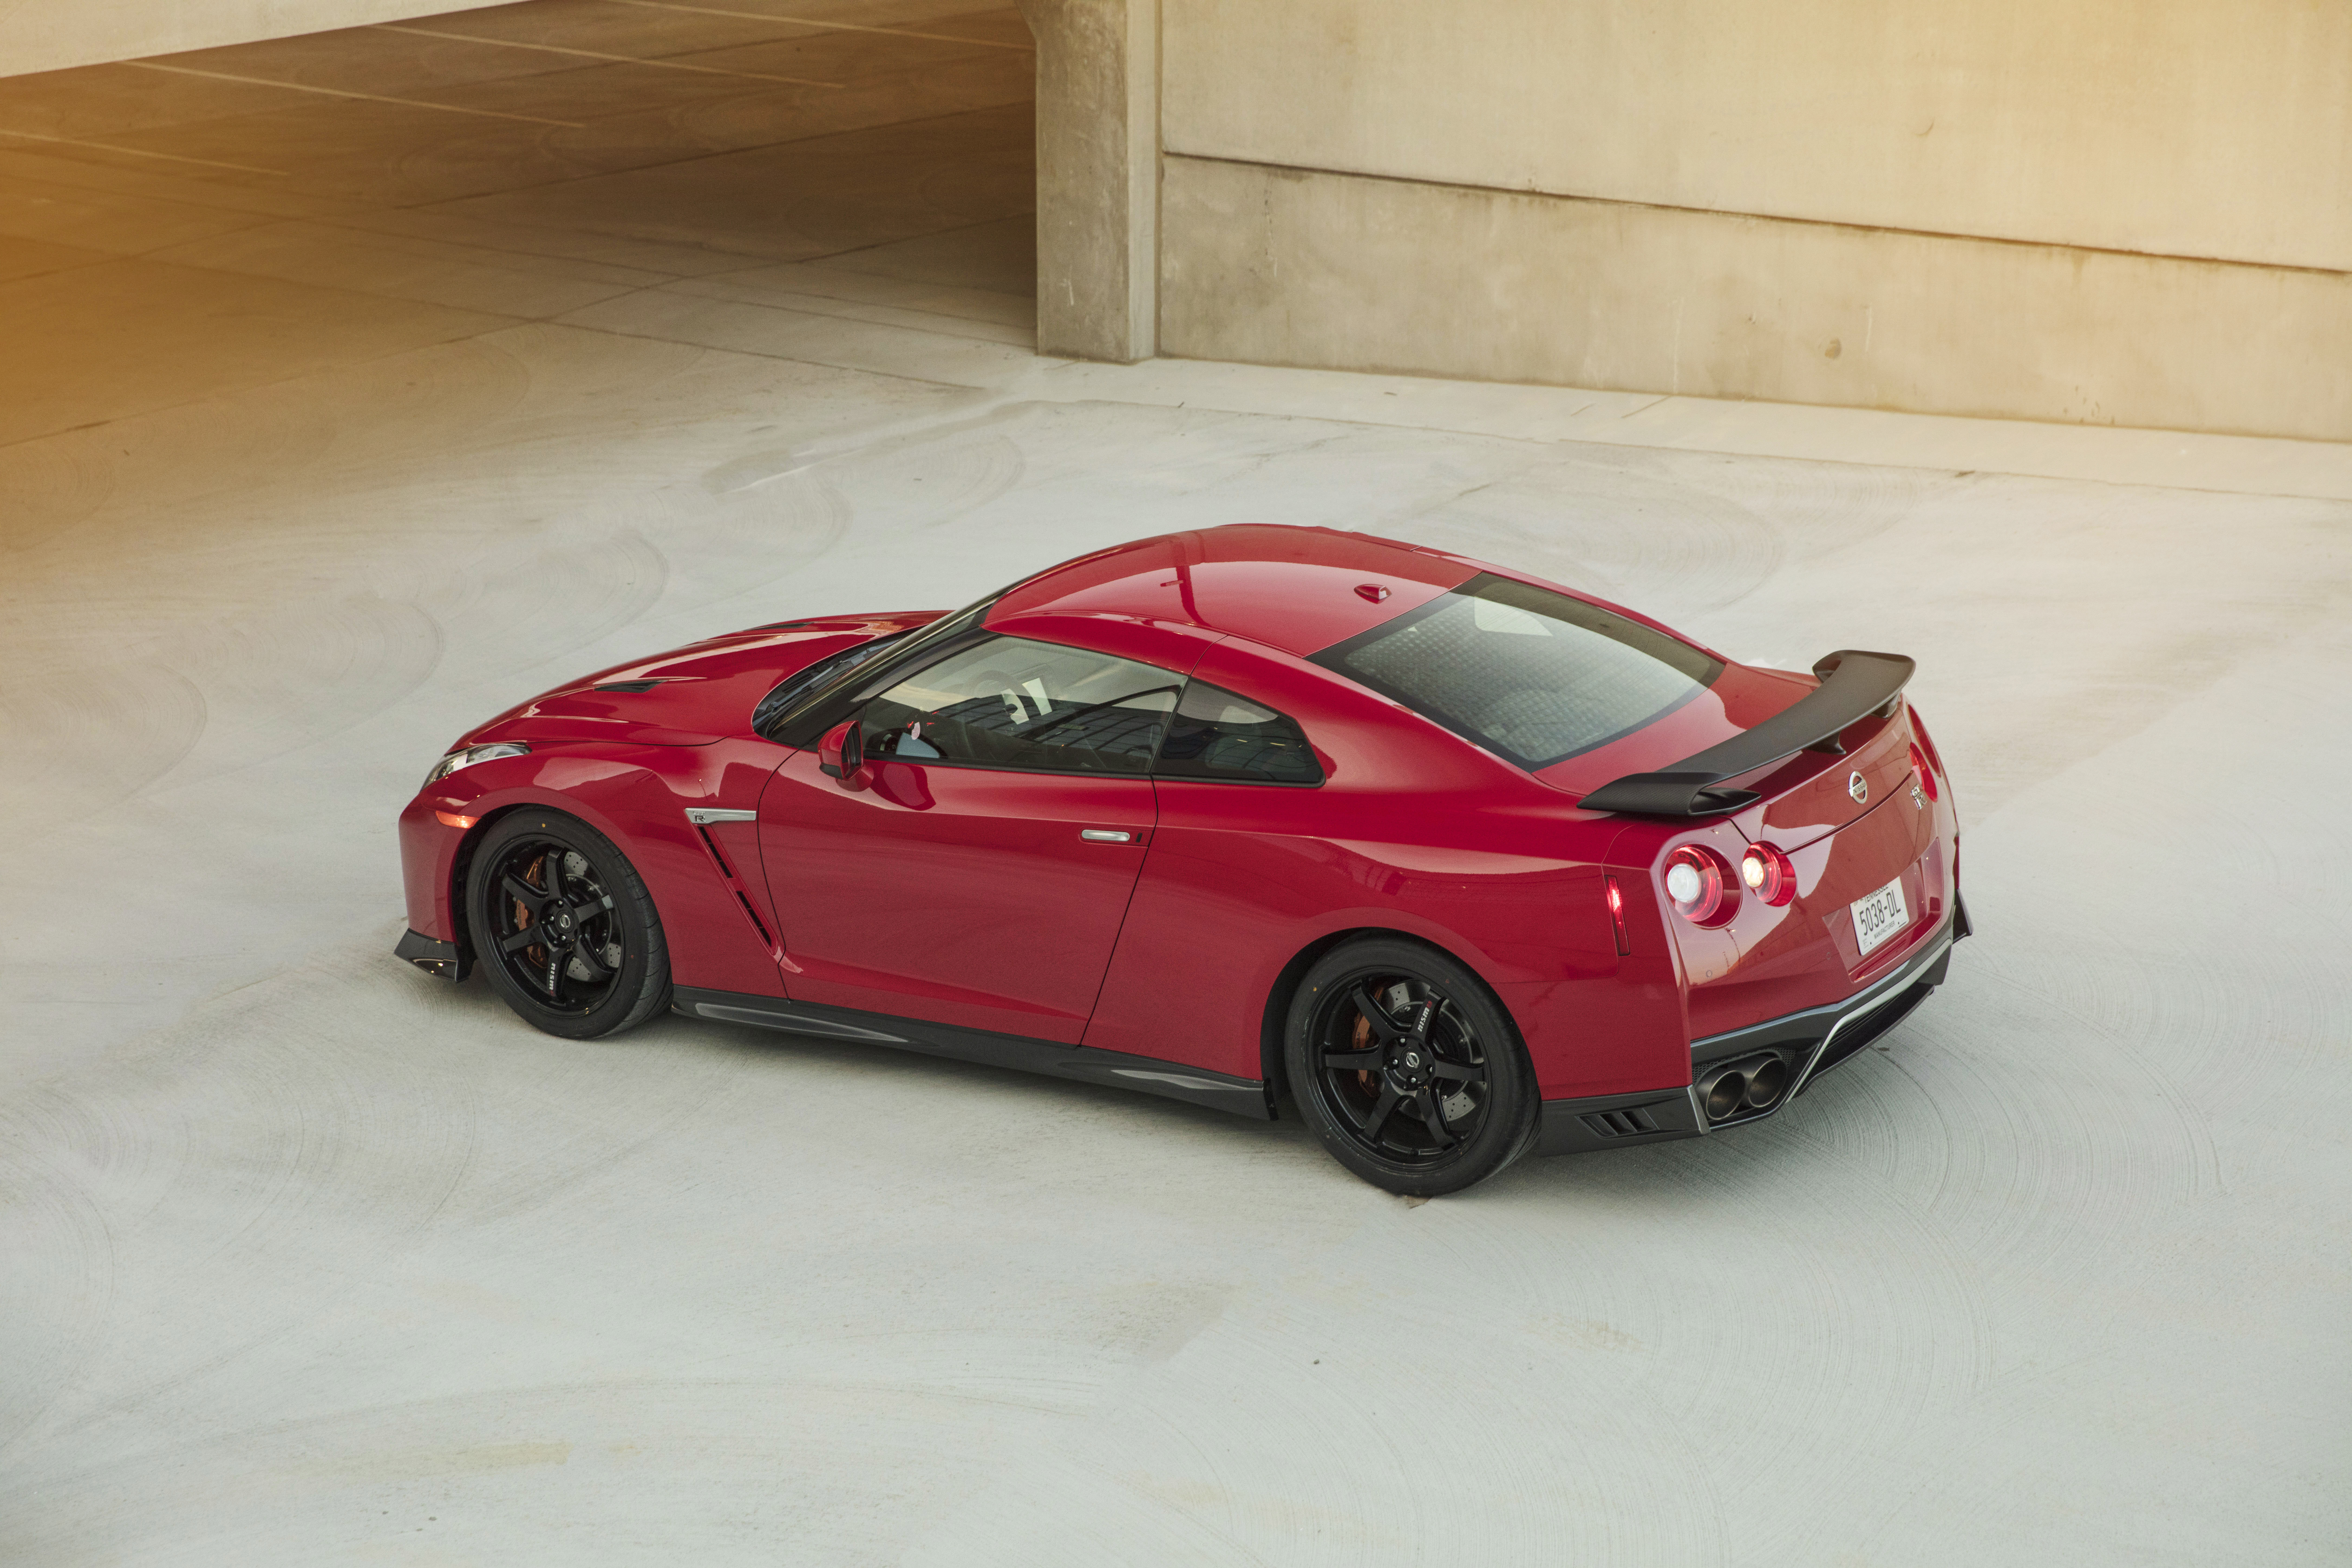 nissan gt r track edition set for u s debut at 2017 new. Black Bedroom Furniture Sets. Home Design Ideas